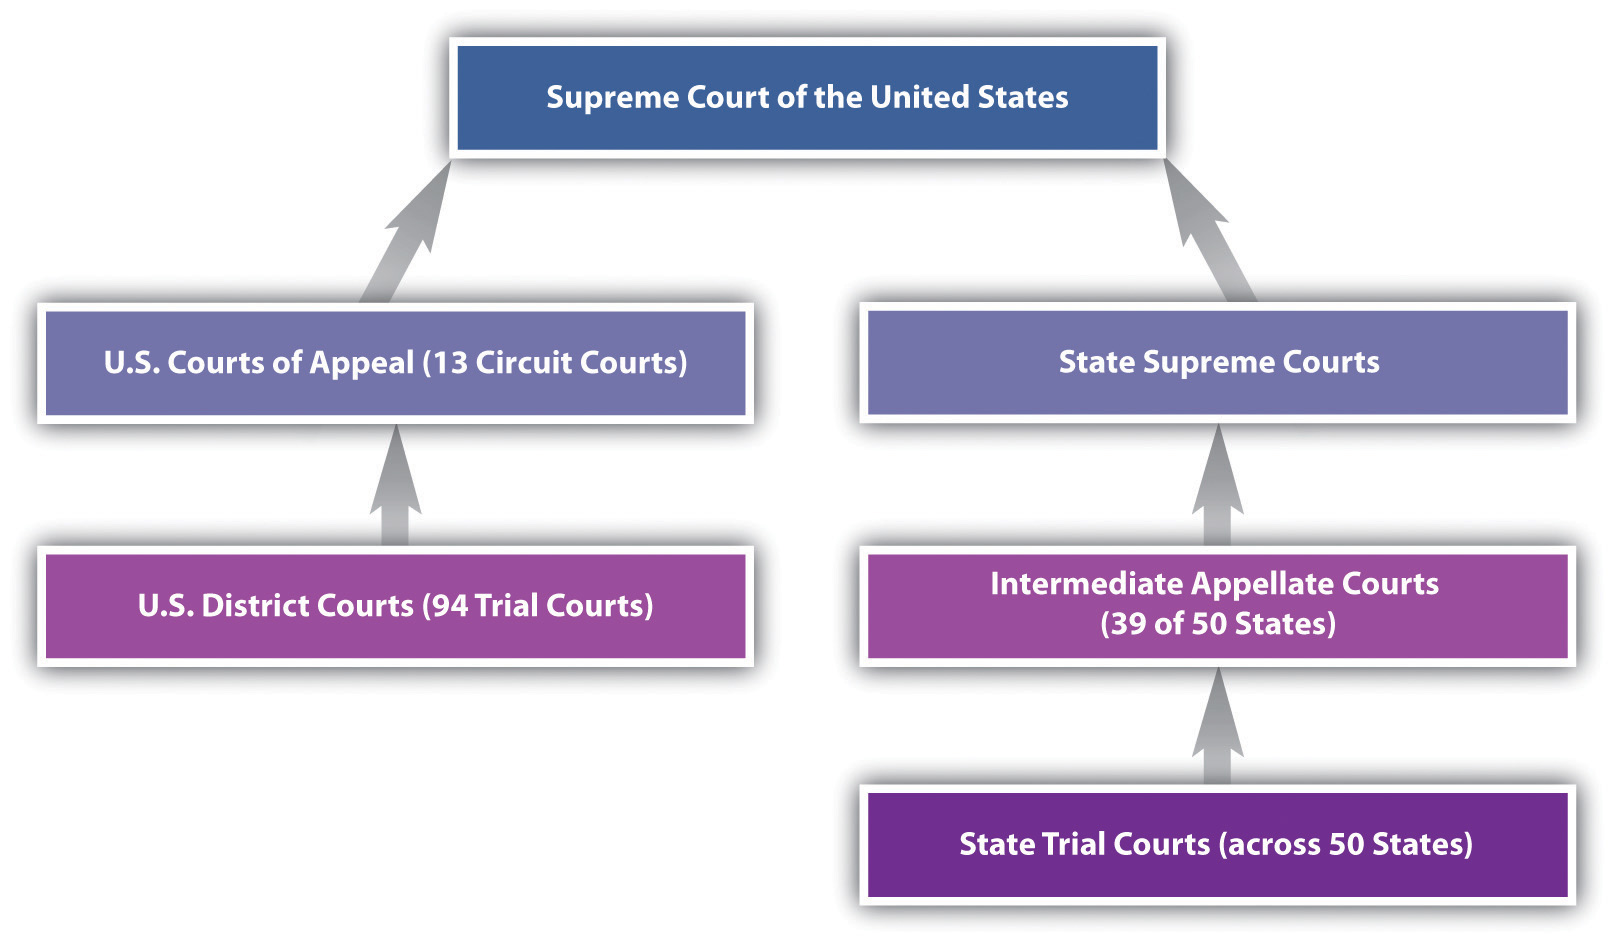 an overview of the supreme court of the united states